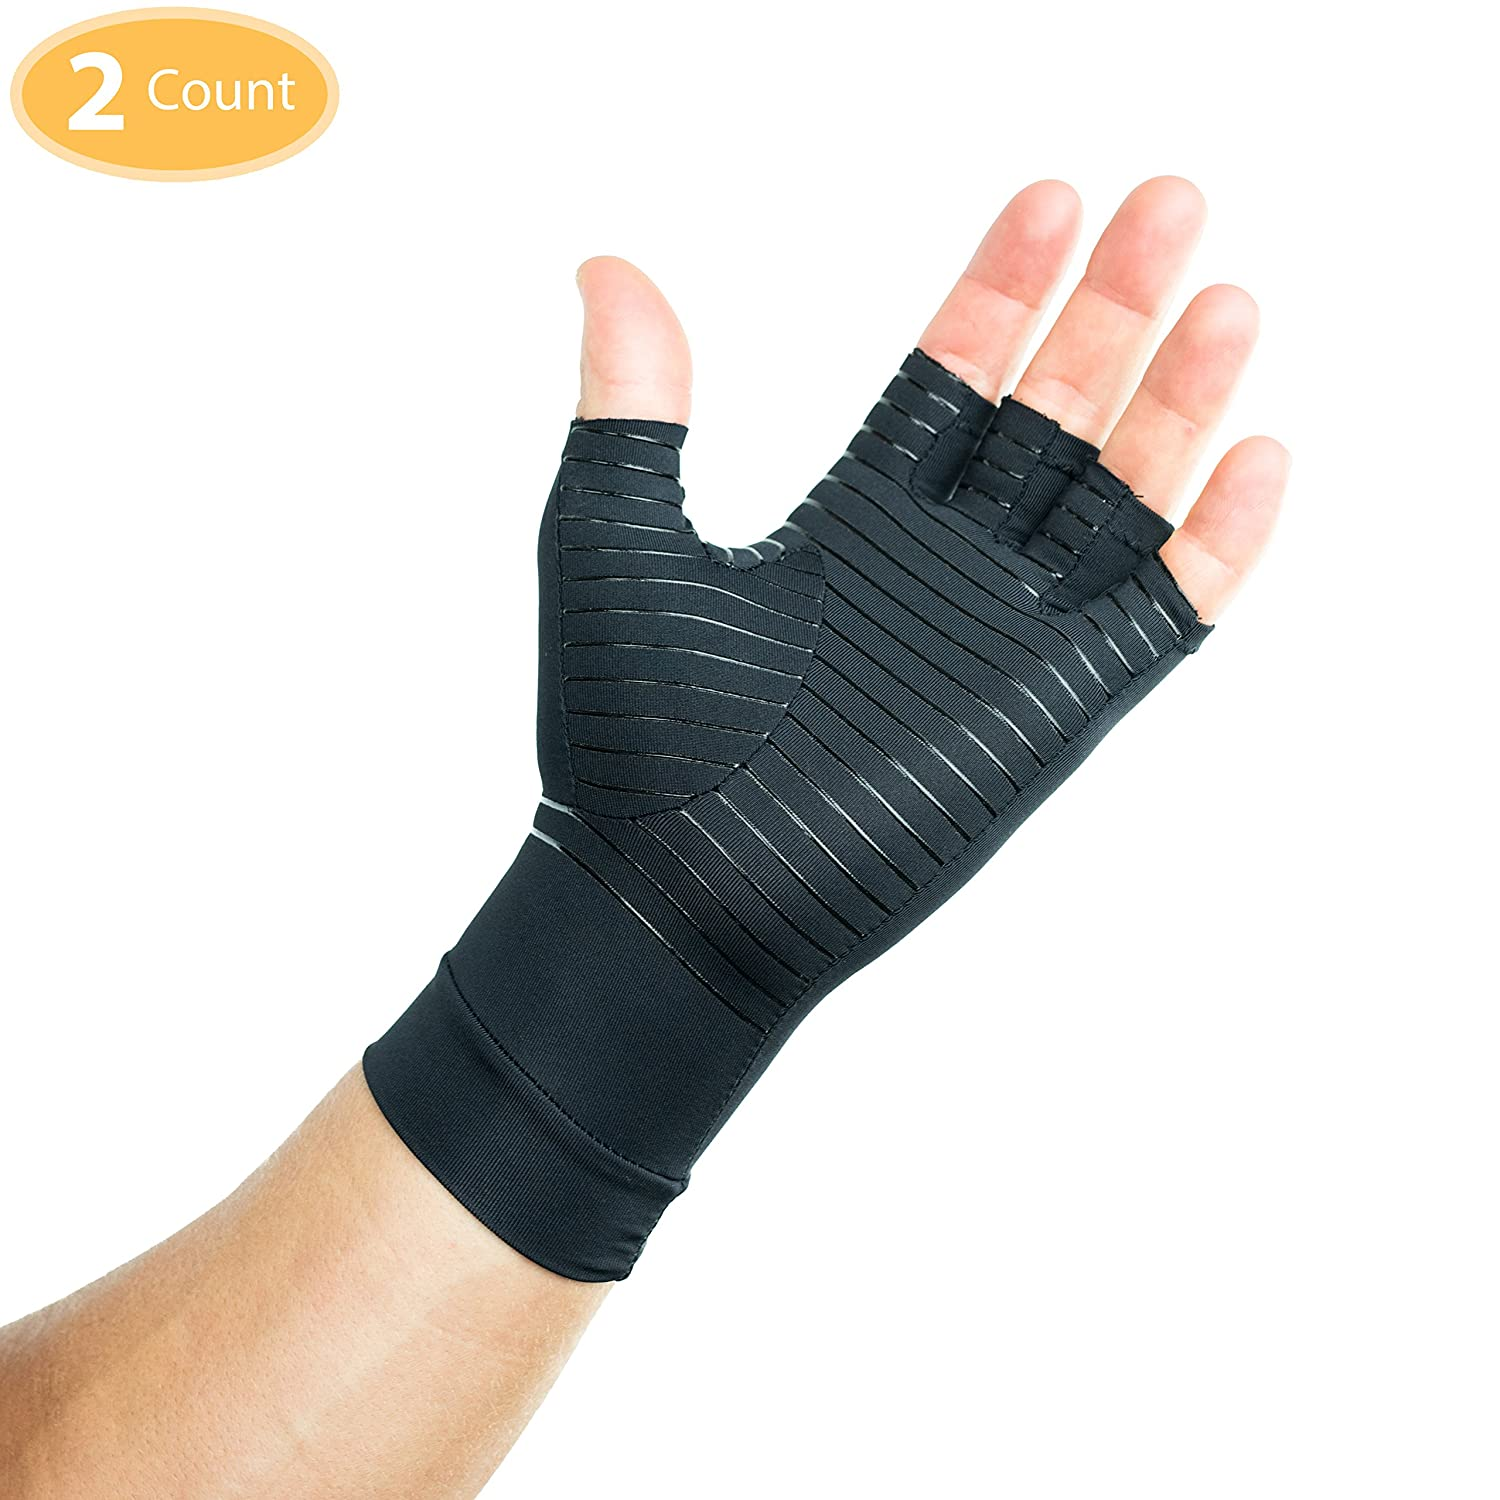 Running Other Uses: Sports Unisex Carpal Tunnel and Muscle or Joint Pain for Men and Women Compression Gloves Infused With Copper for Arthritis Cycling Workouts Gym Athletes Gaming Driving